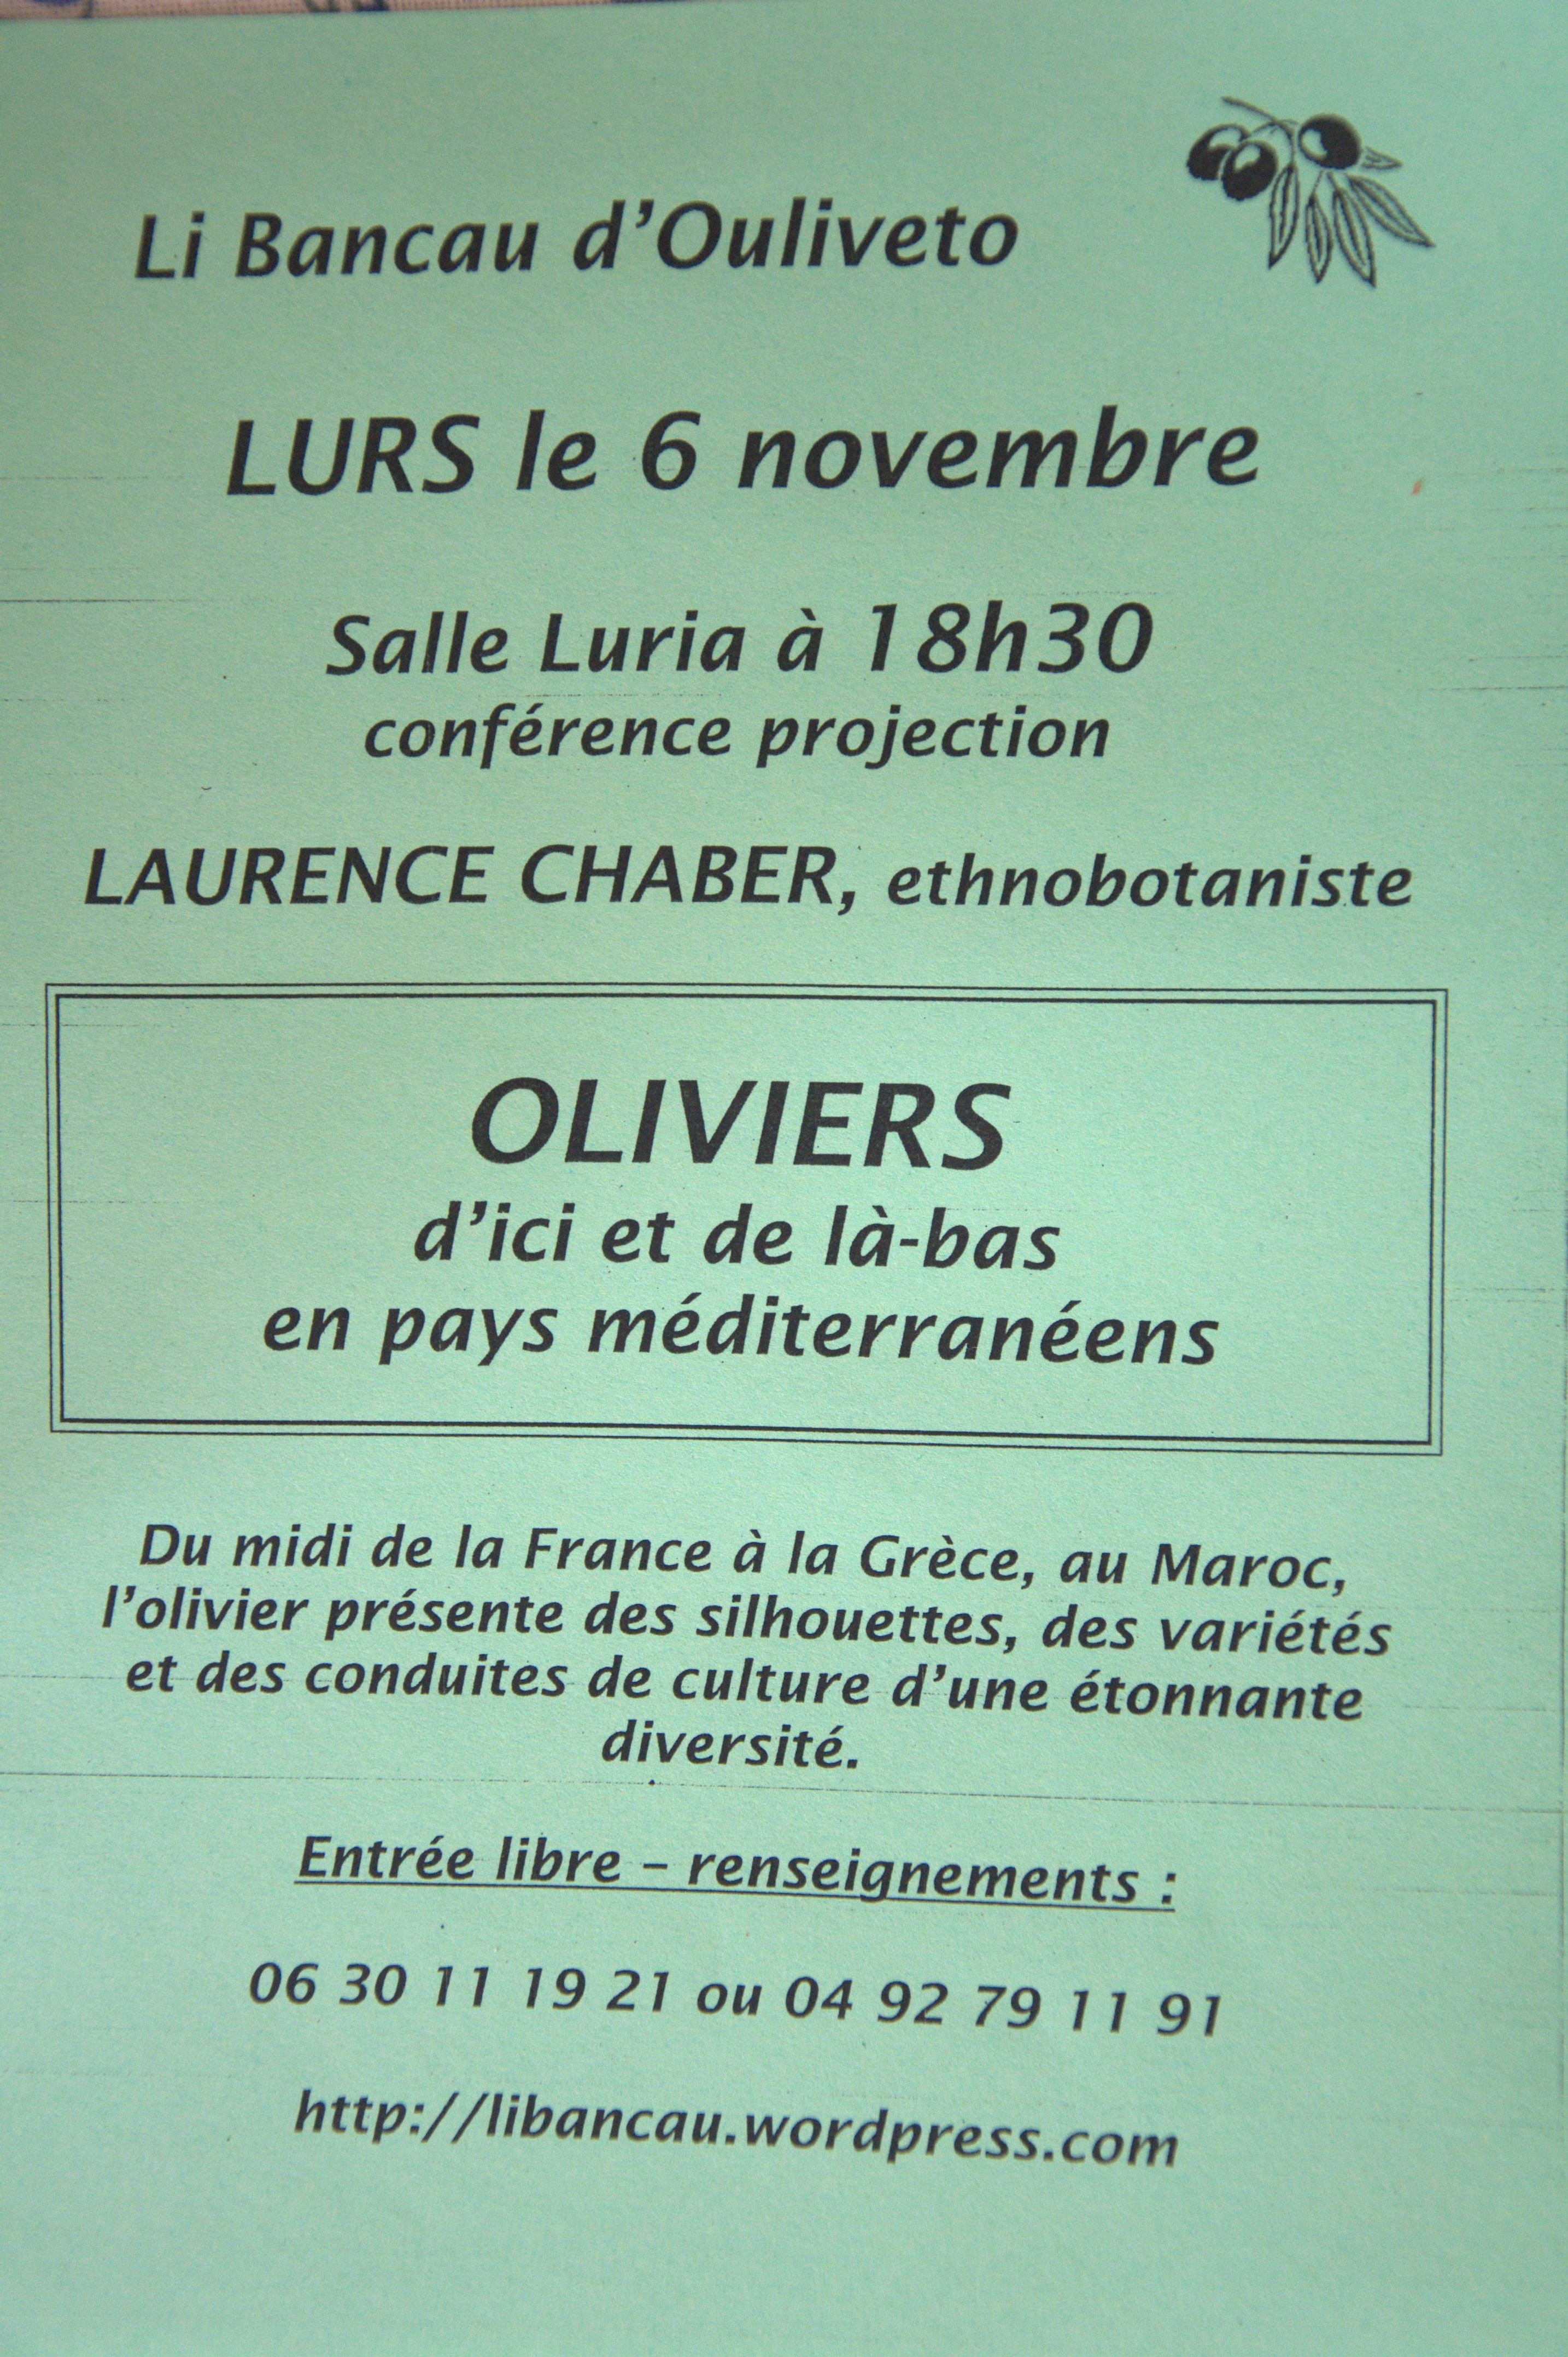 annonce oiviers 0287